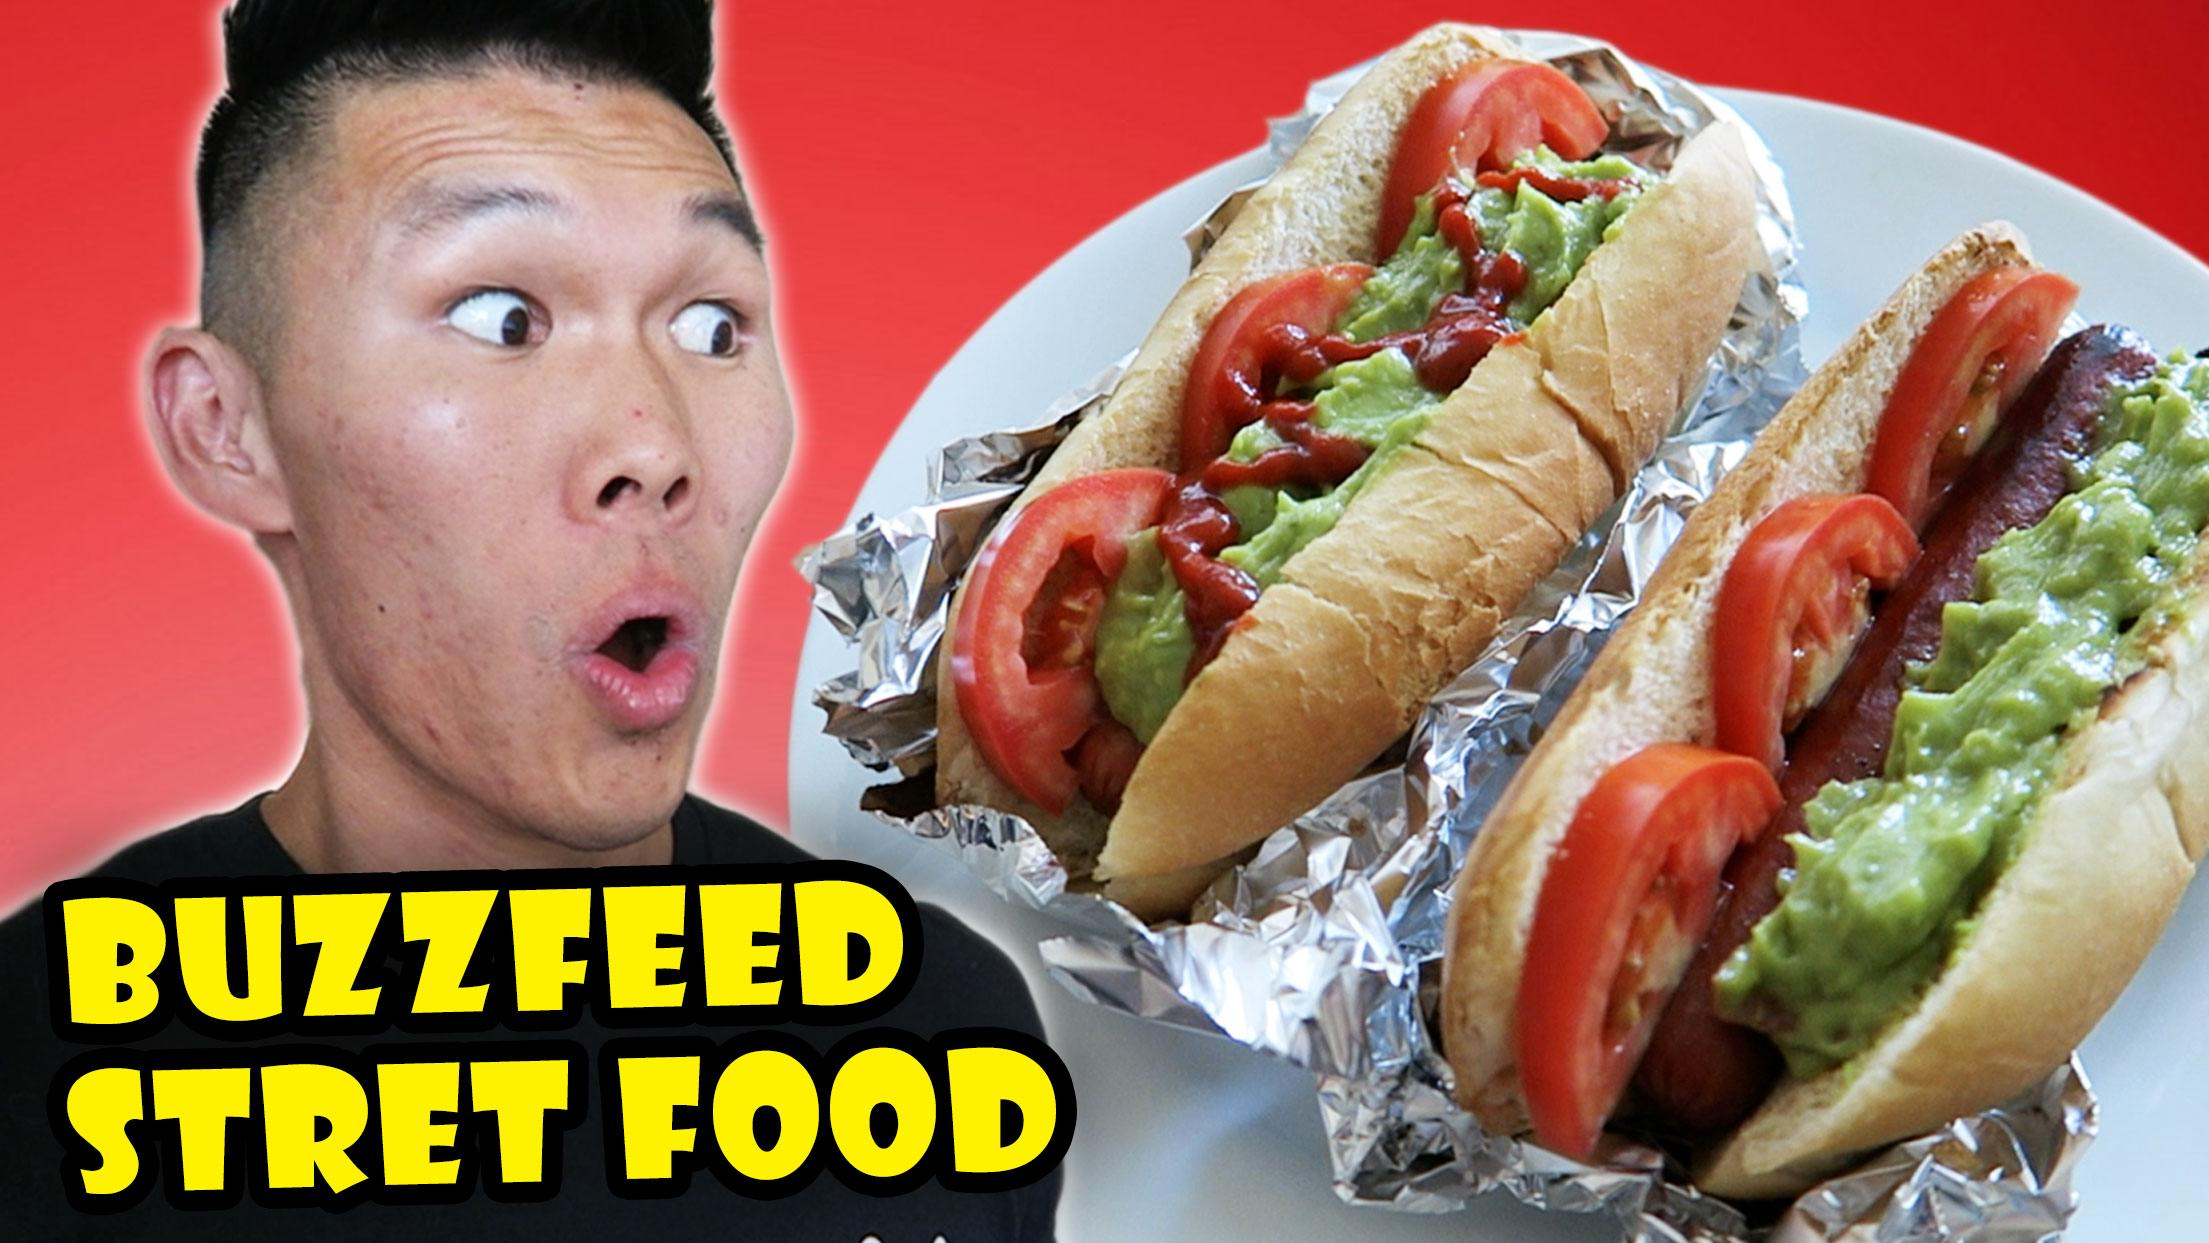 Buzzfeed tasty street food style recipes tested life after buzzfeed tasty street food style recipes tested forumfinder Images